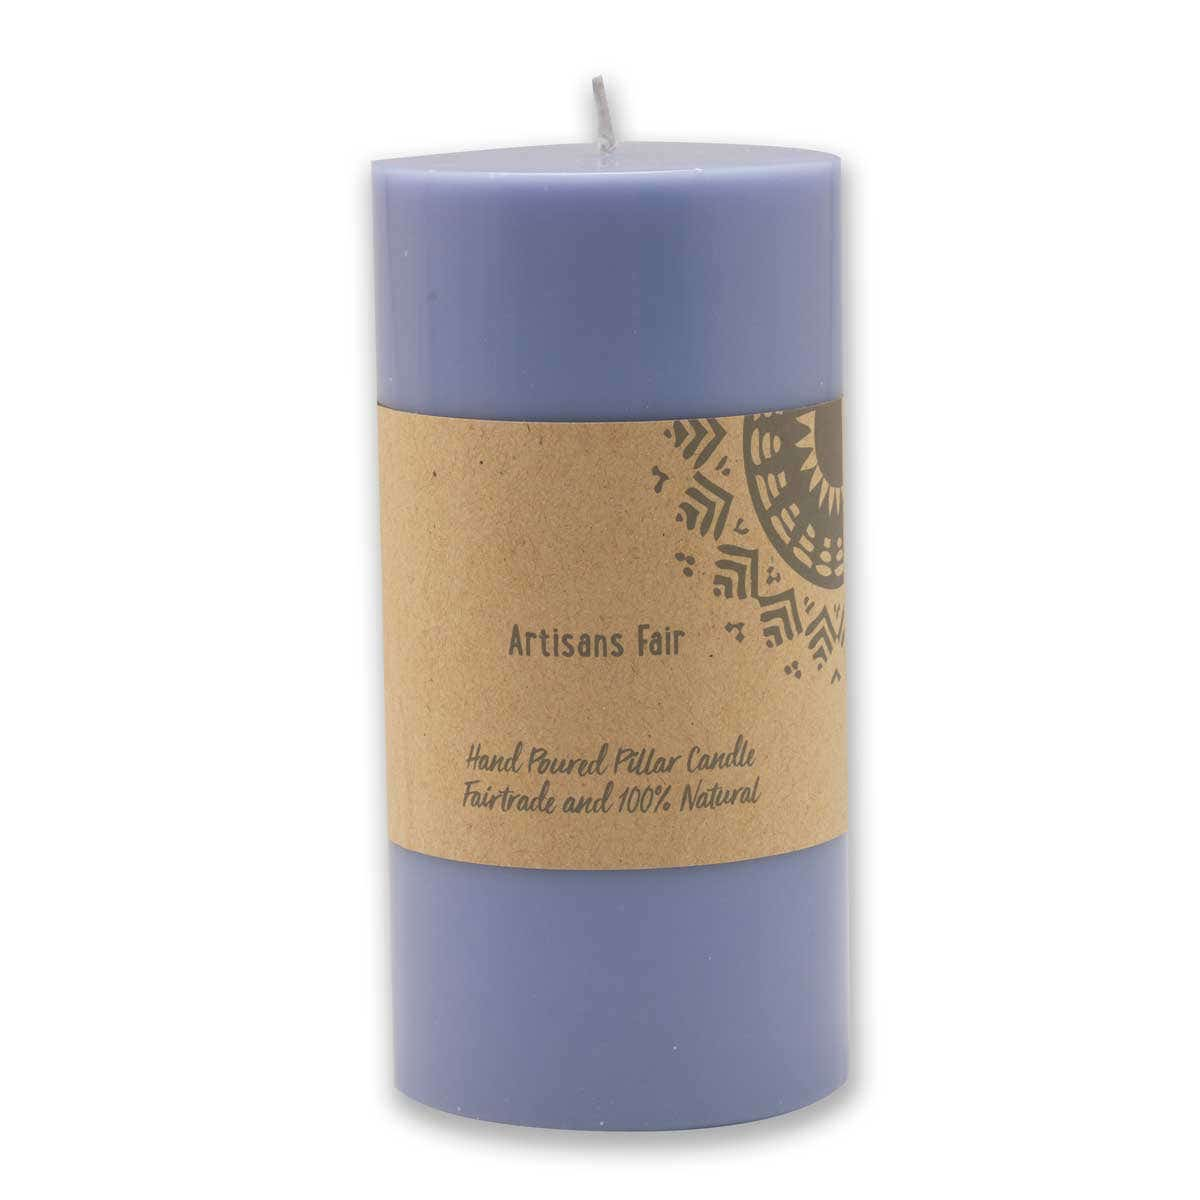 Soft Blue Pillar Candle - Medium